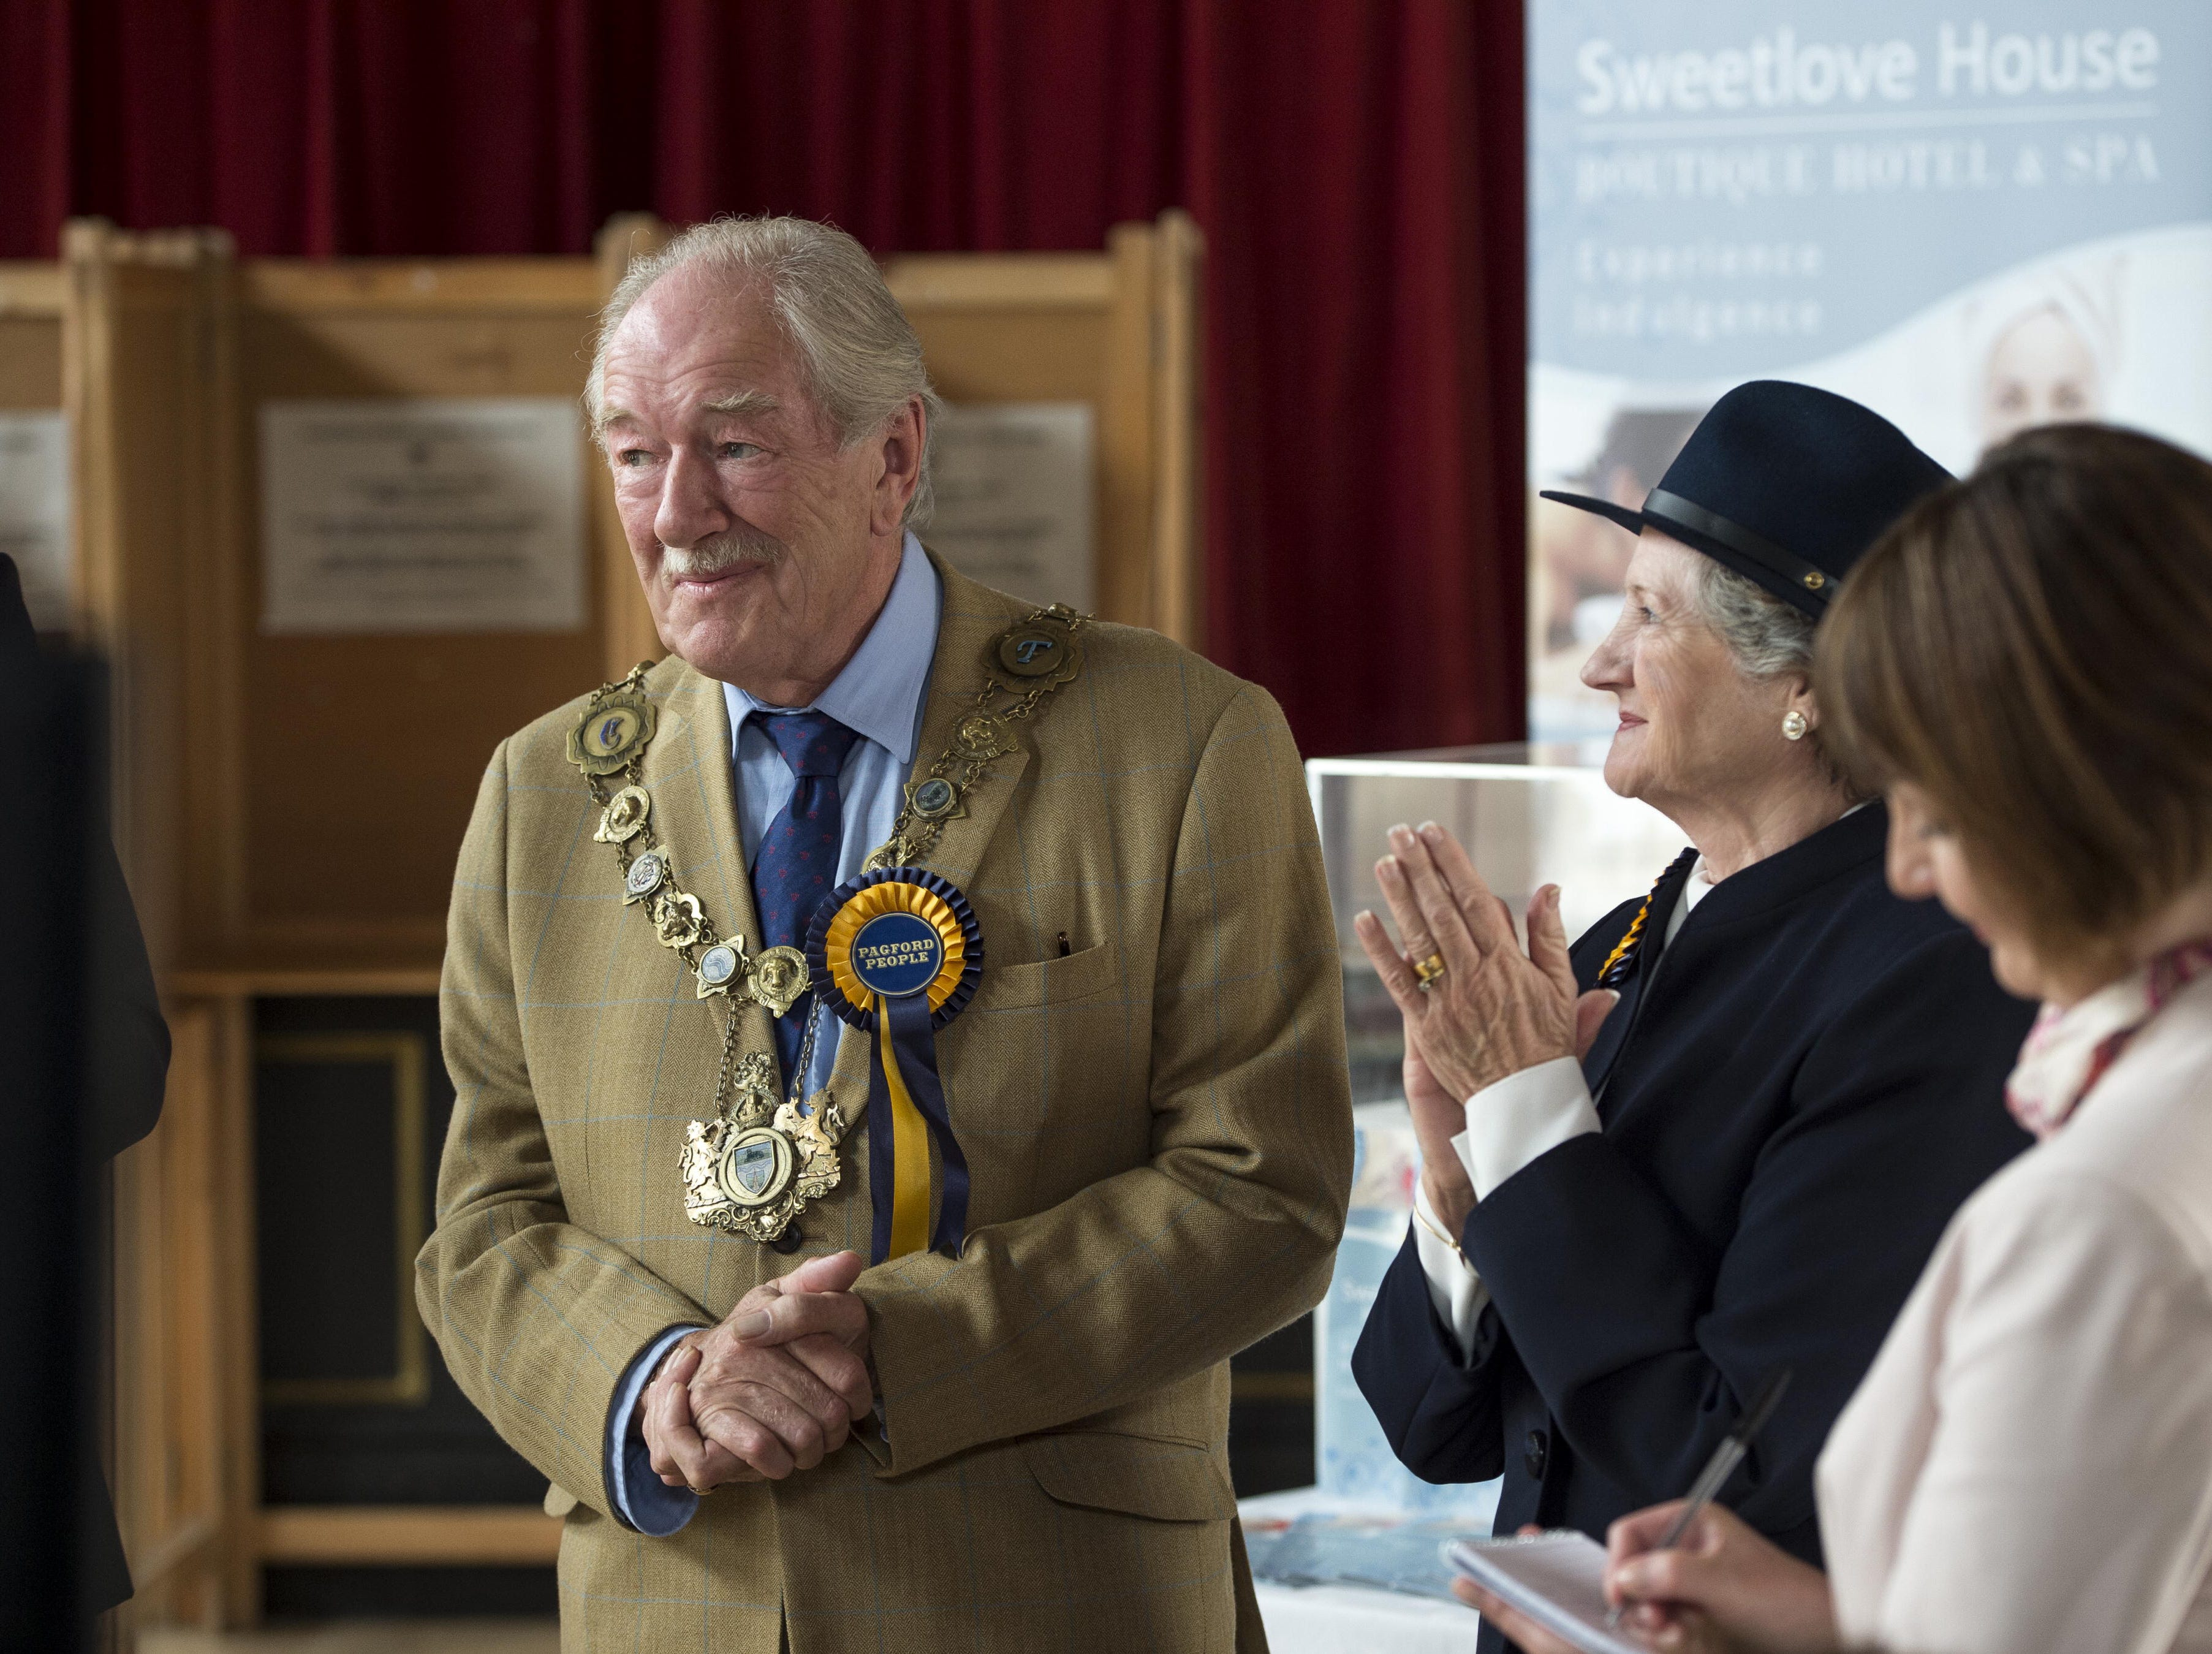 """Gambon took on the role of Howard Mollison in the HBO miniseries """"The Casual Vacancy,"""" which was also based on a book by """"Potter"""" author J. K. Rowling."""